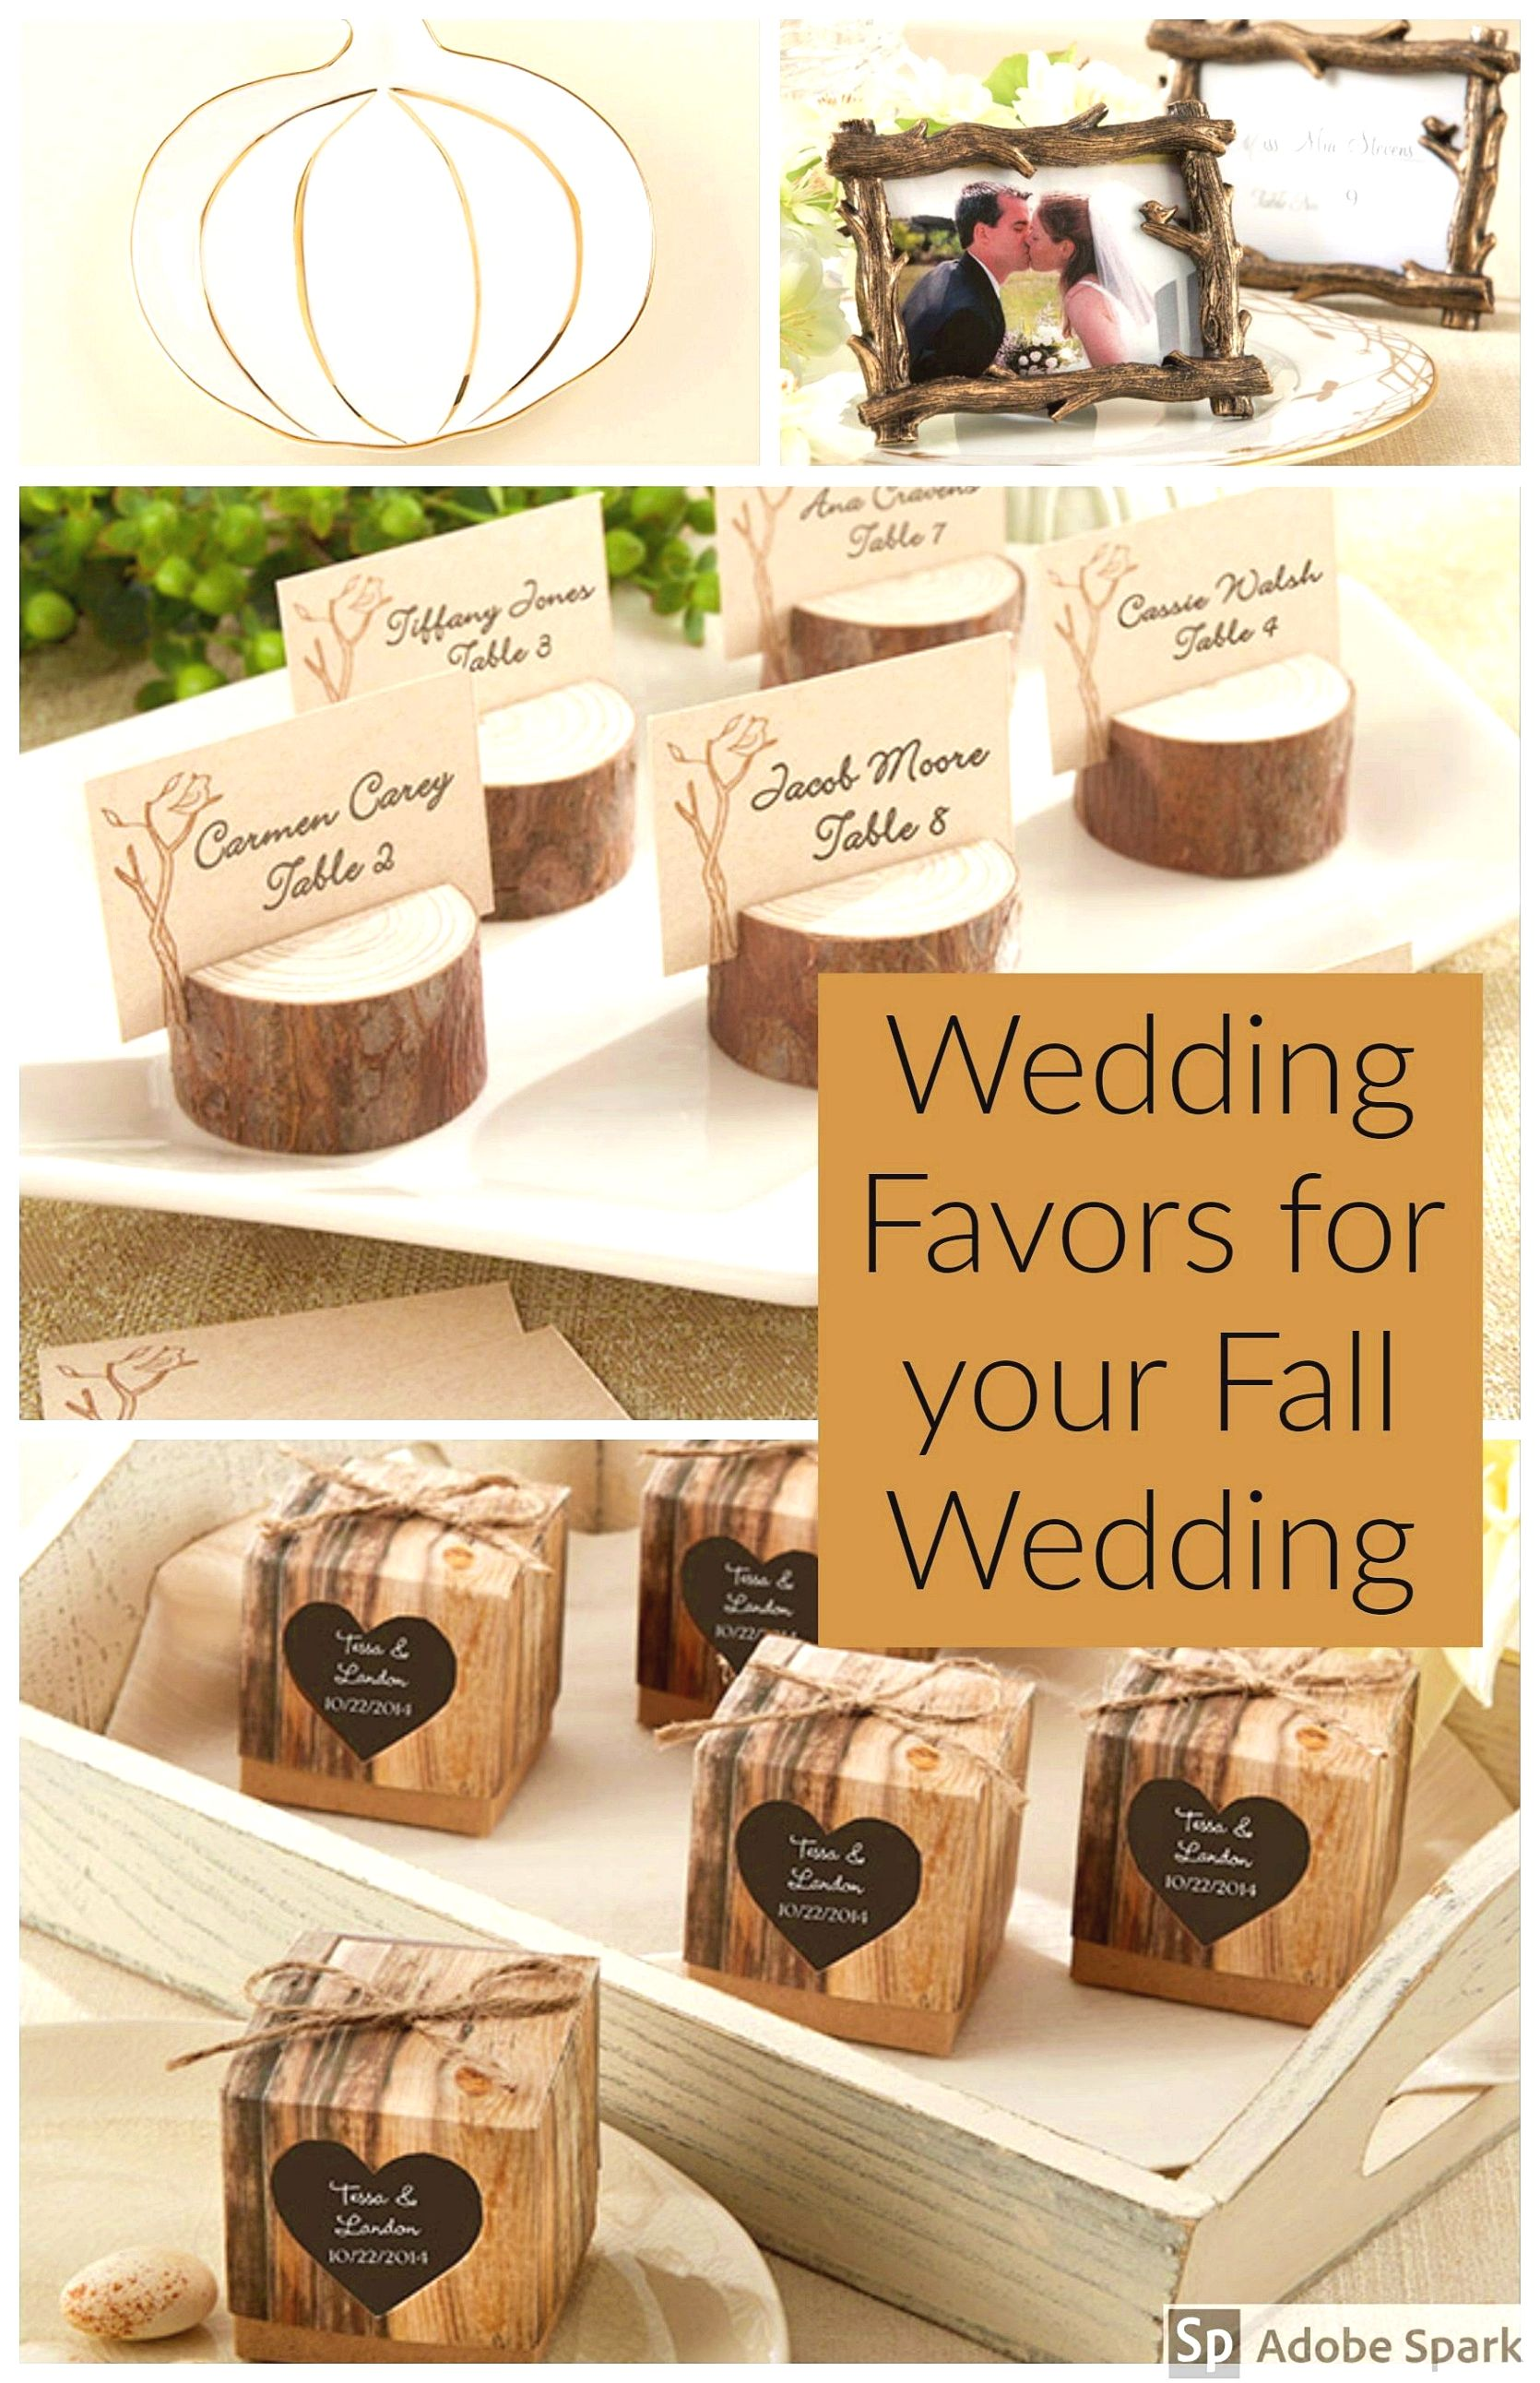 Wedding Favors Ideas Since Gold Prices Constantly Rise Consider Rings Of Other Metals Instead Wedding Favors Fall Rustic Wedding Favors Trendy Wedding Favors